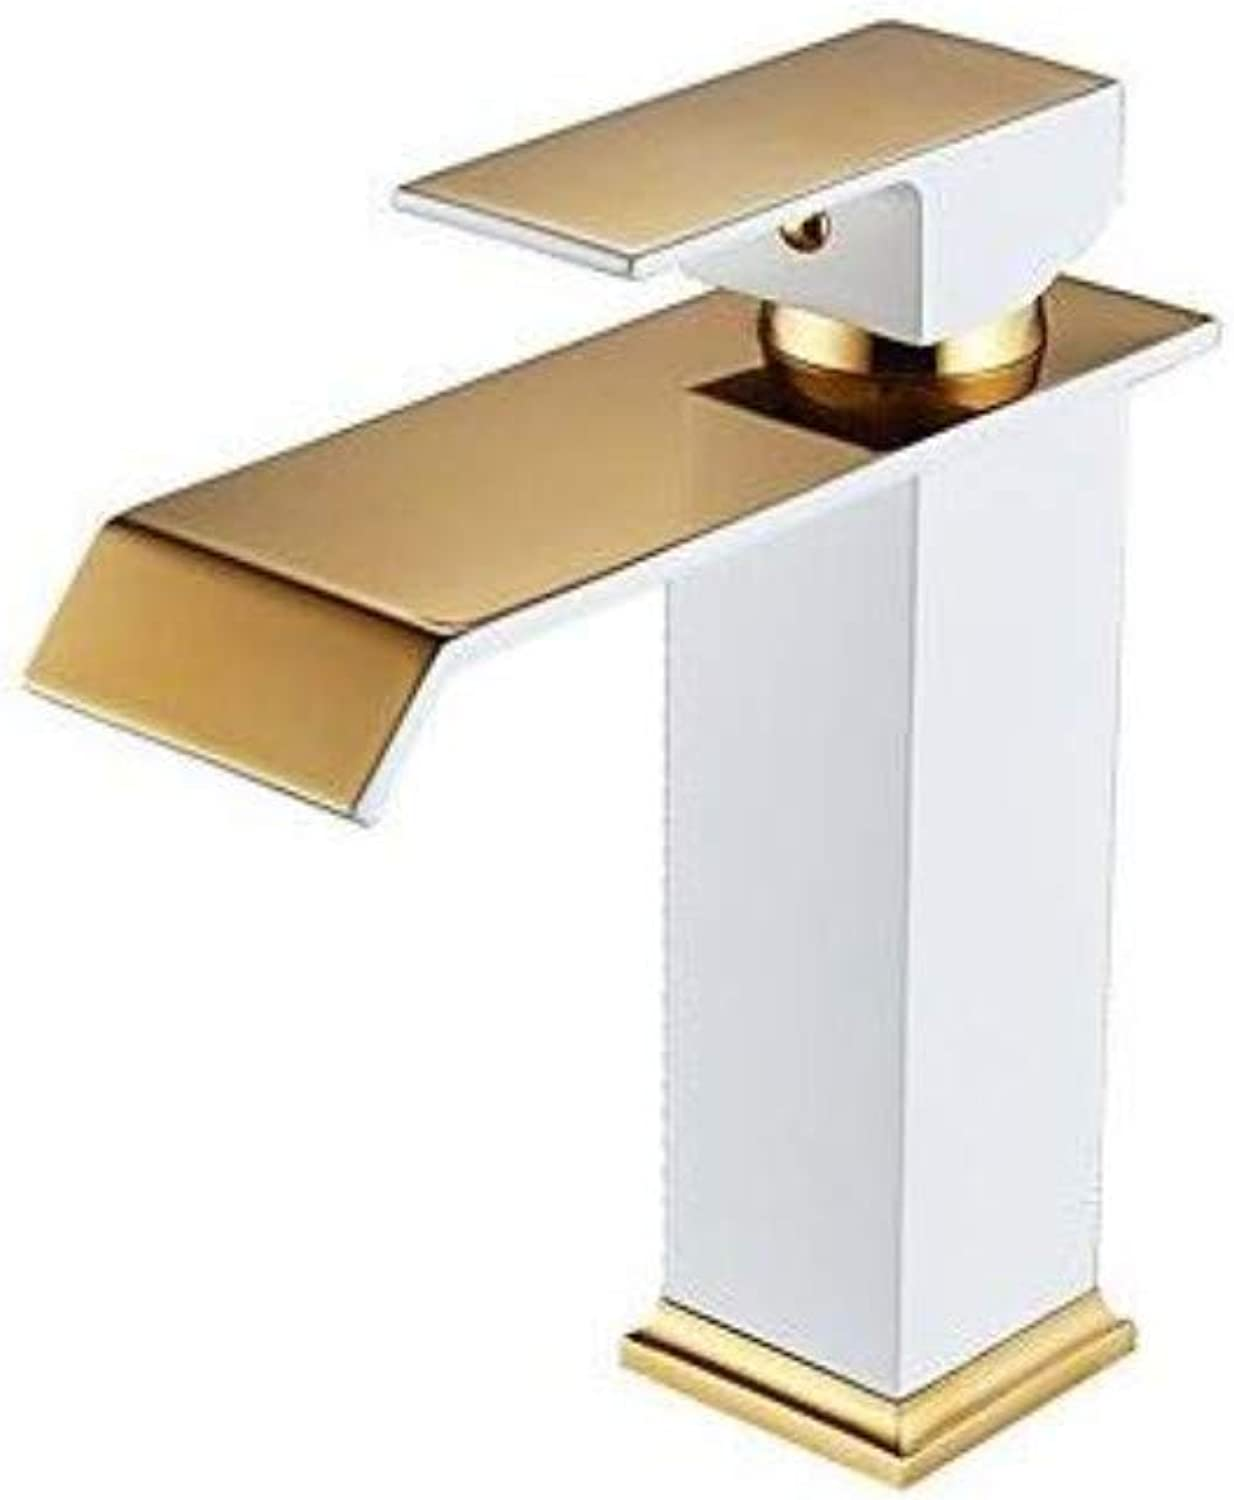 Taps Kitchen Sinkbathroom Sink Faucet - Waterfall Painted Finishes Centerset Single Handle One Holebath Taps